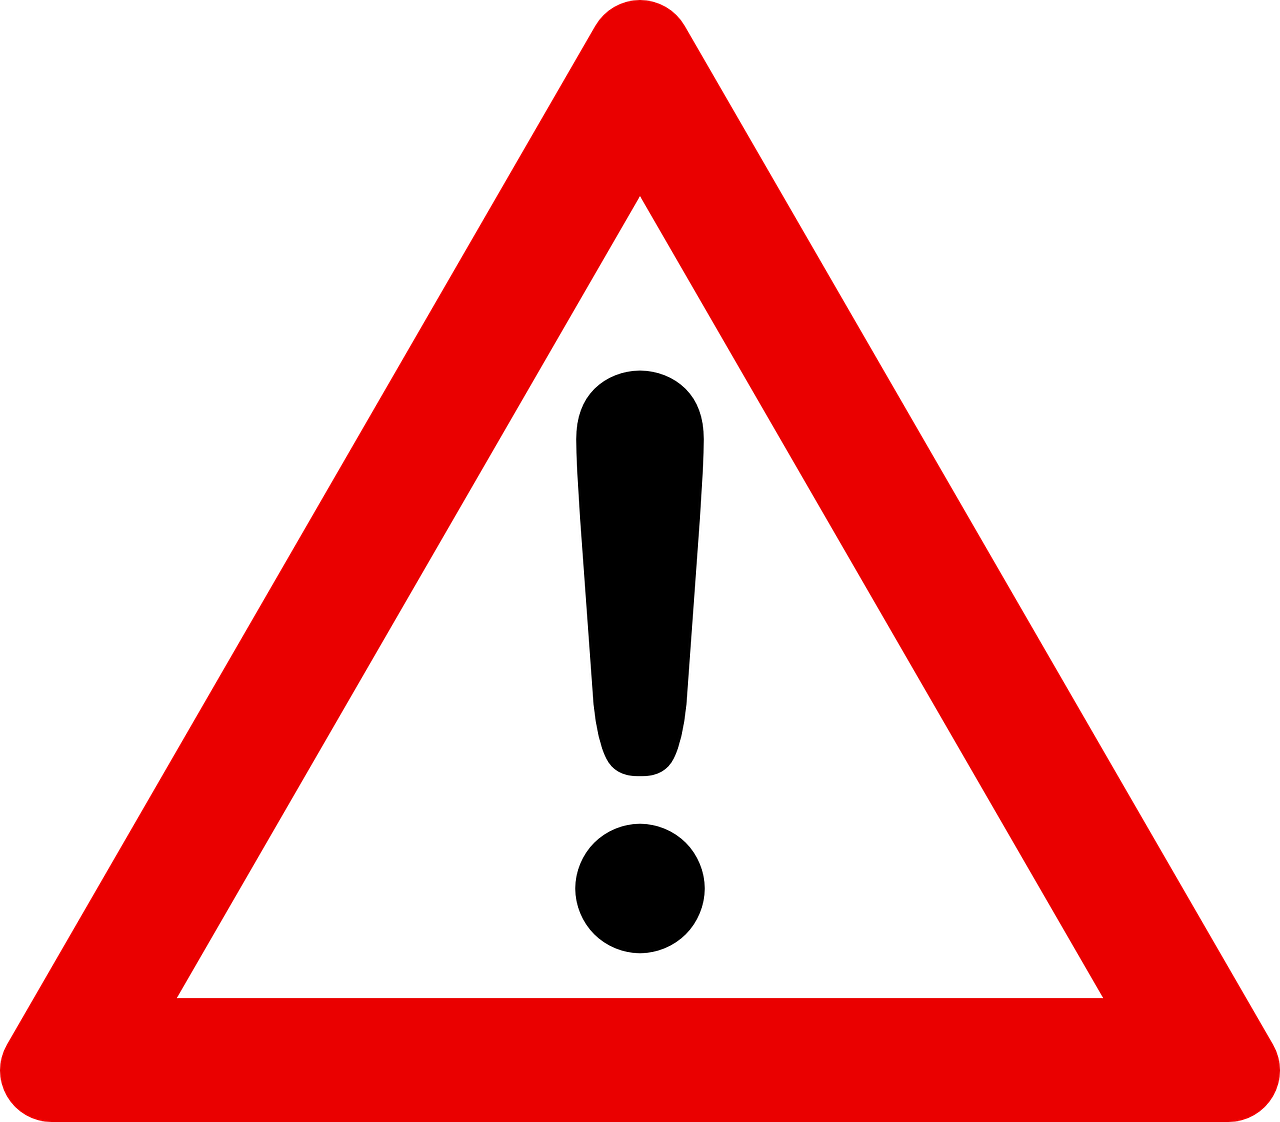 triangle traffic warning sign